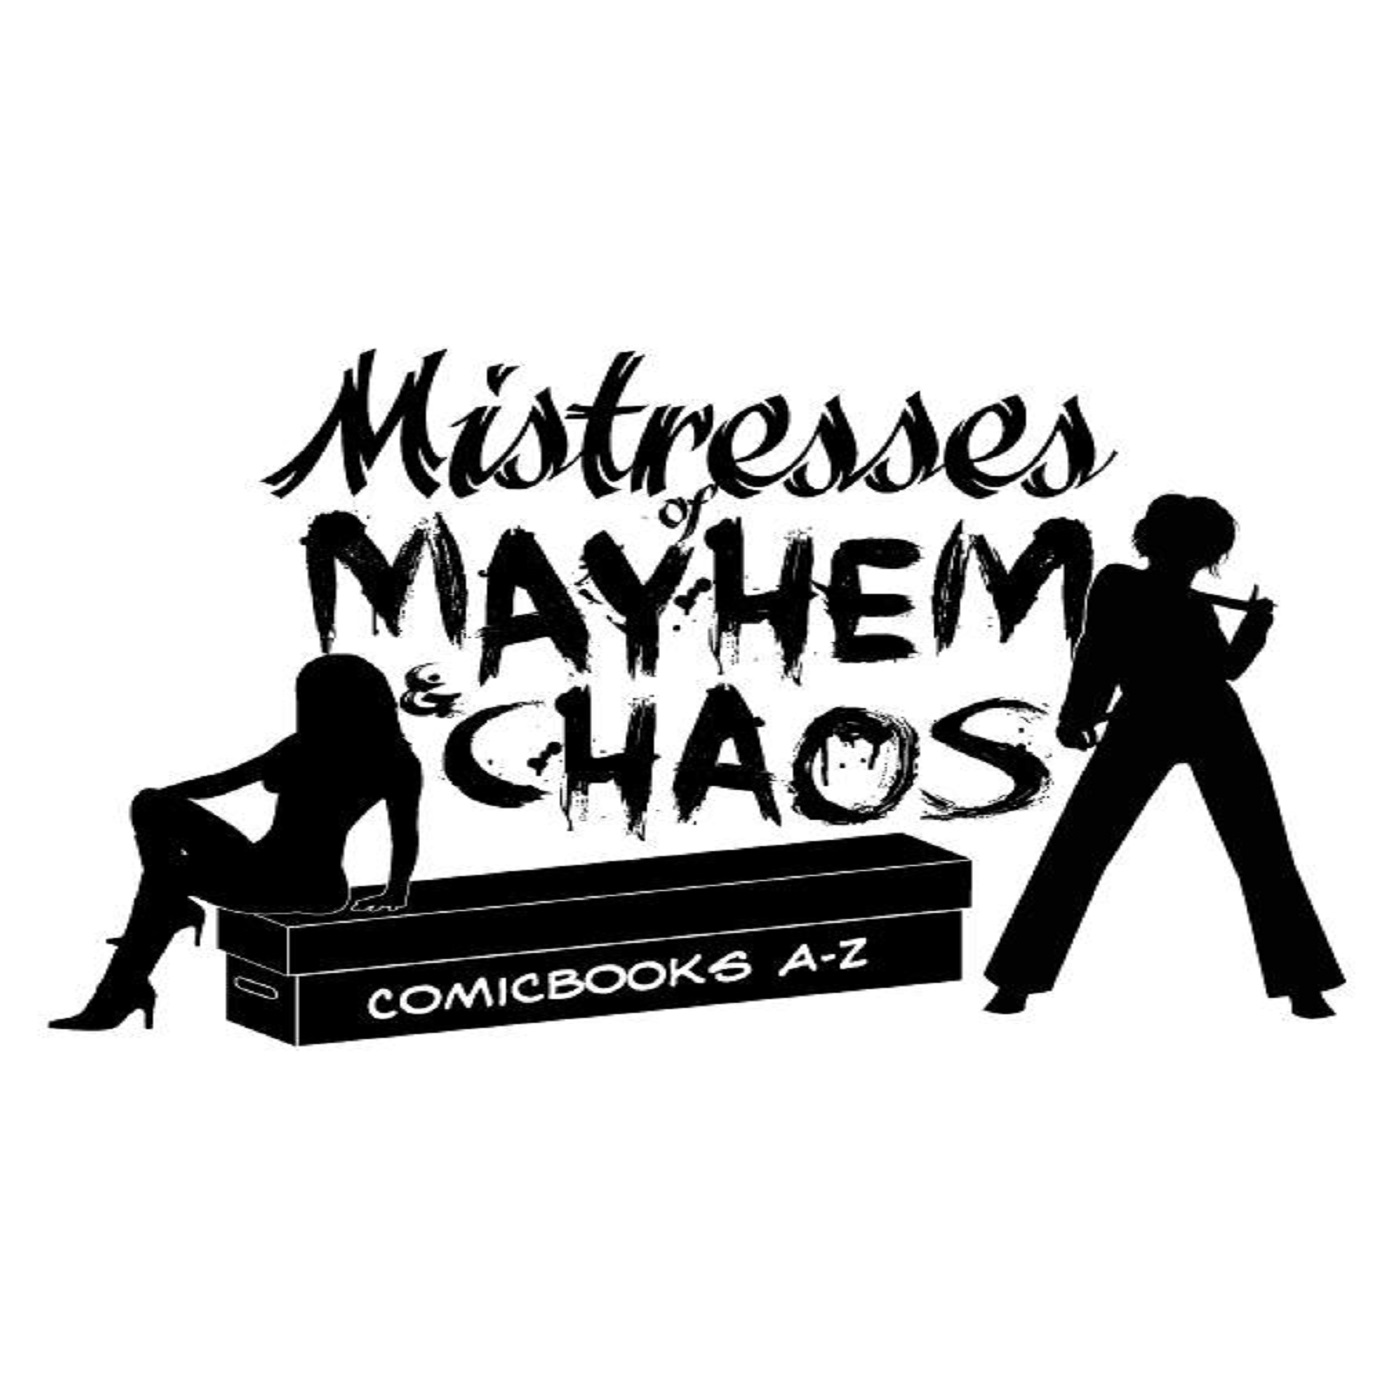 The Mistresses of Mayhem & Chaos